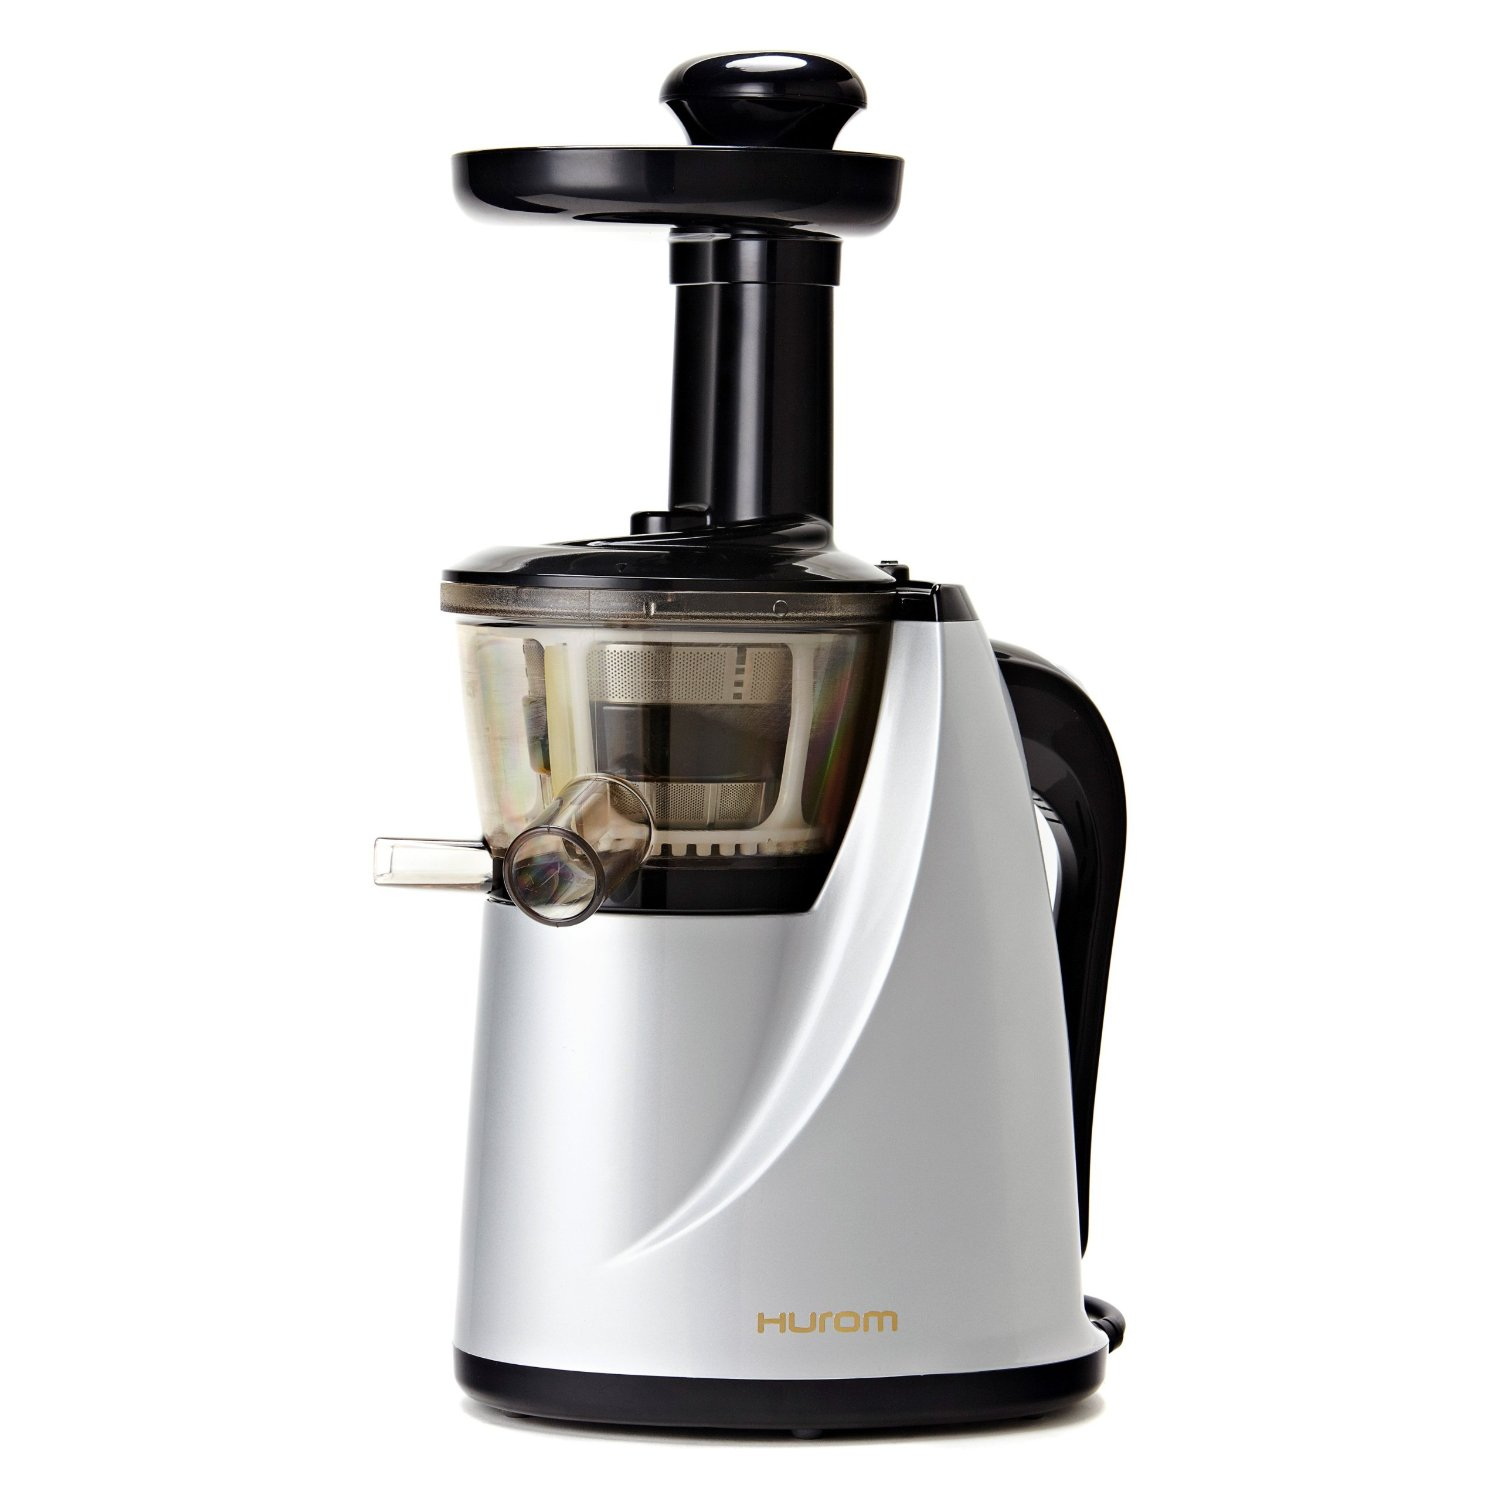 Hurom Slow Juicer Q0010 : Hurom HU-100 Masticating Slow Juicer Review - Best Cold Press Juicers